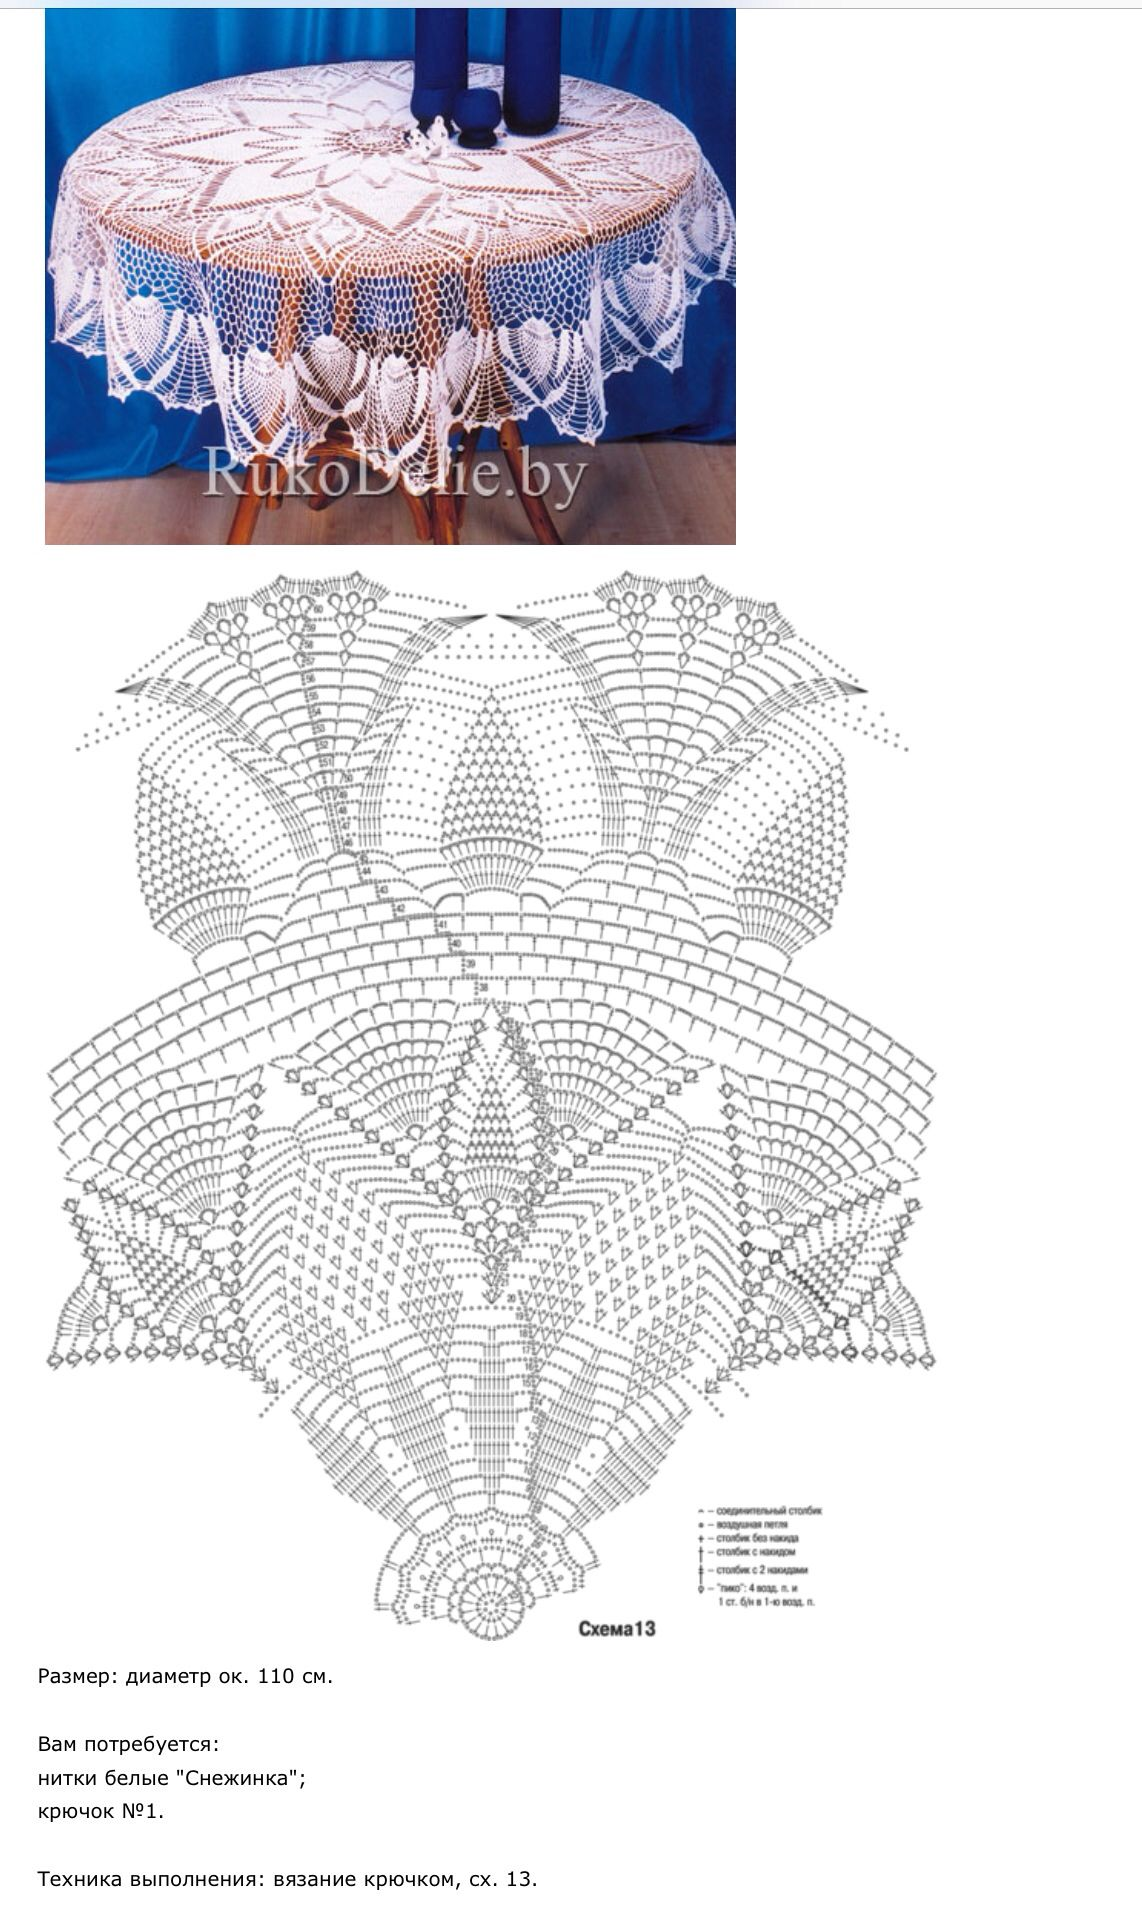 pineapple crochet doily diagram how to wire a 3 way switch 1000 43 ideas about round tablecloth on pinterest